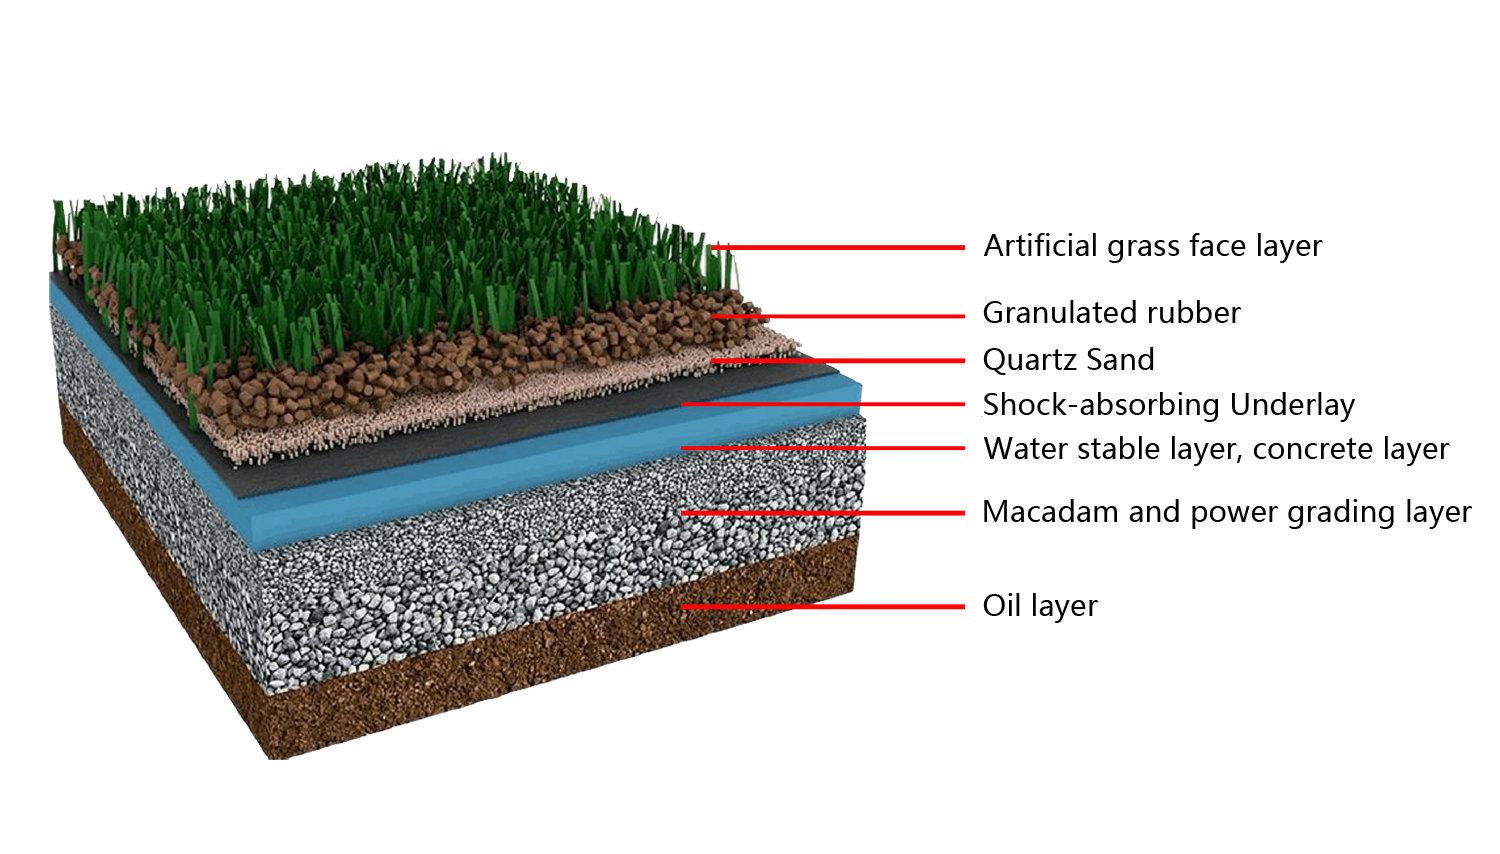 Structure of artificial turf